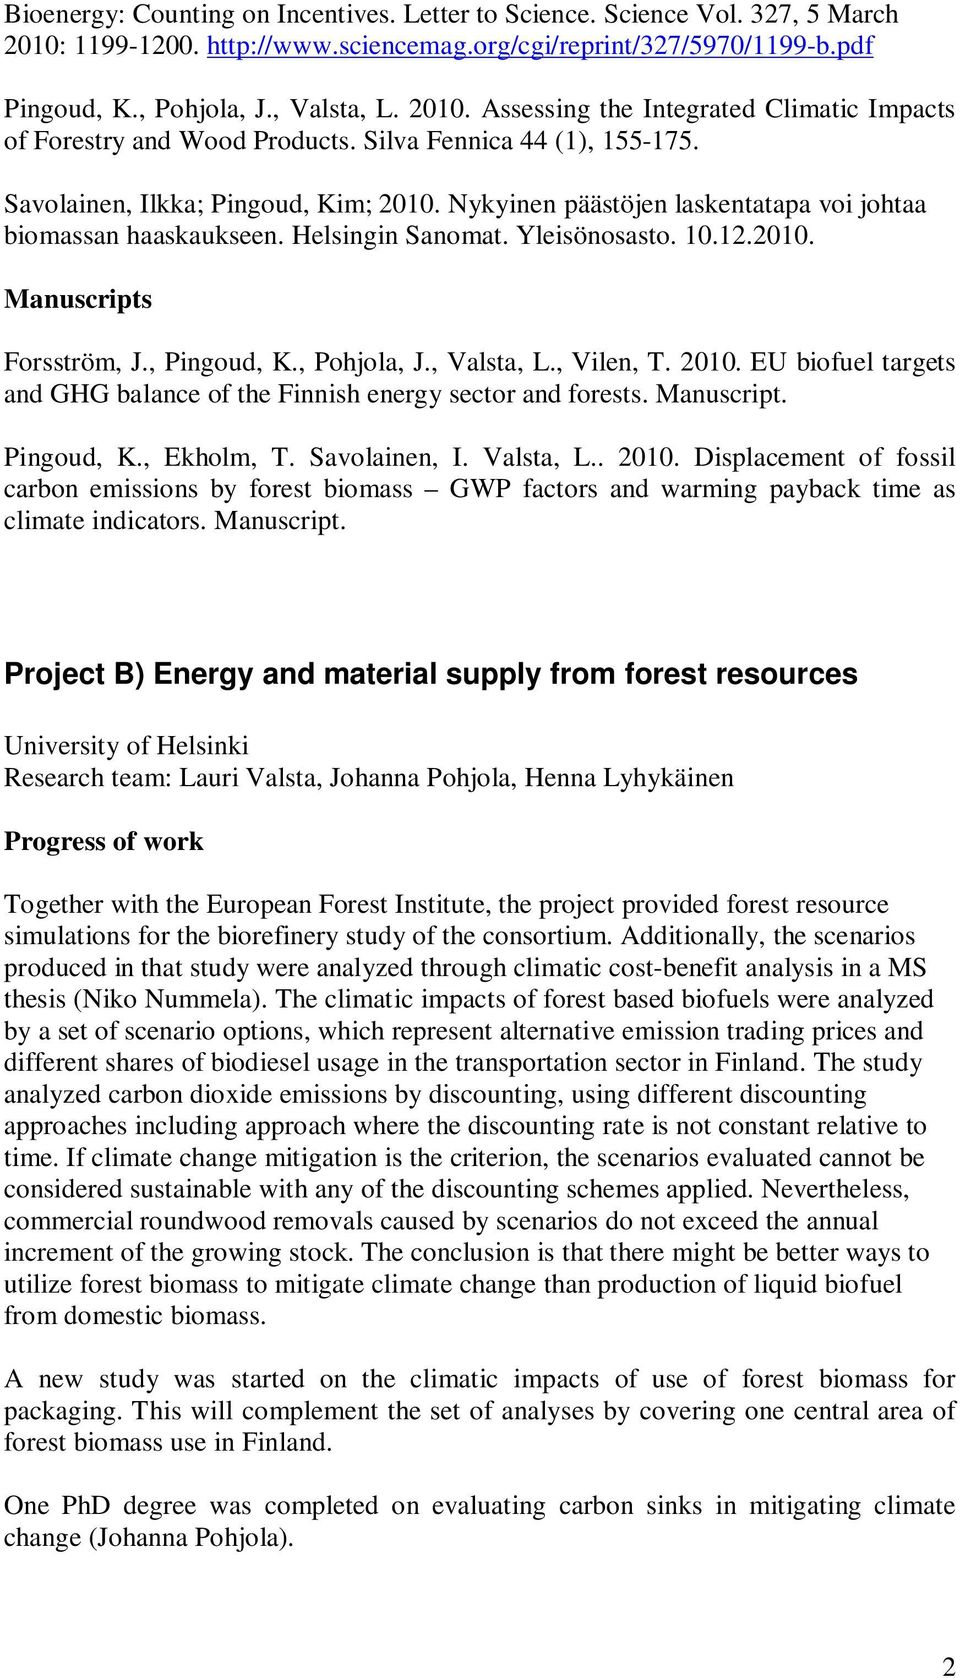 , Pingoud, K., Pohjola, J., Valsta, L., Vilen, T. 2010. EU biofuel targets and GHG balance of the Finnish energy sector and forests. Manuscript. Pingoud, K., Ekholm, T. Savolainen, I. Valsta, L.. 2010. Displacement of fossil carbon emissions by forest biomass GWP factors and warming payback time as climate indicators.